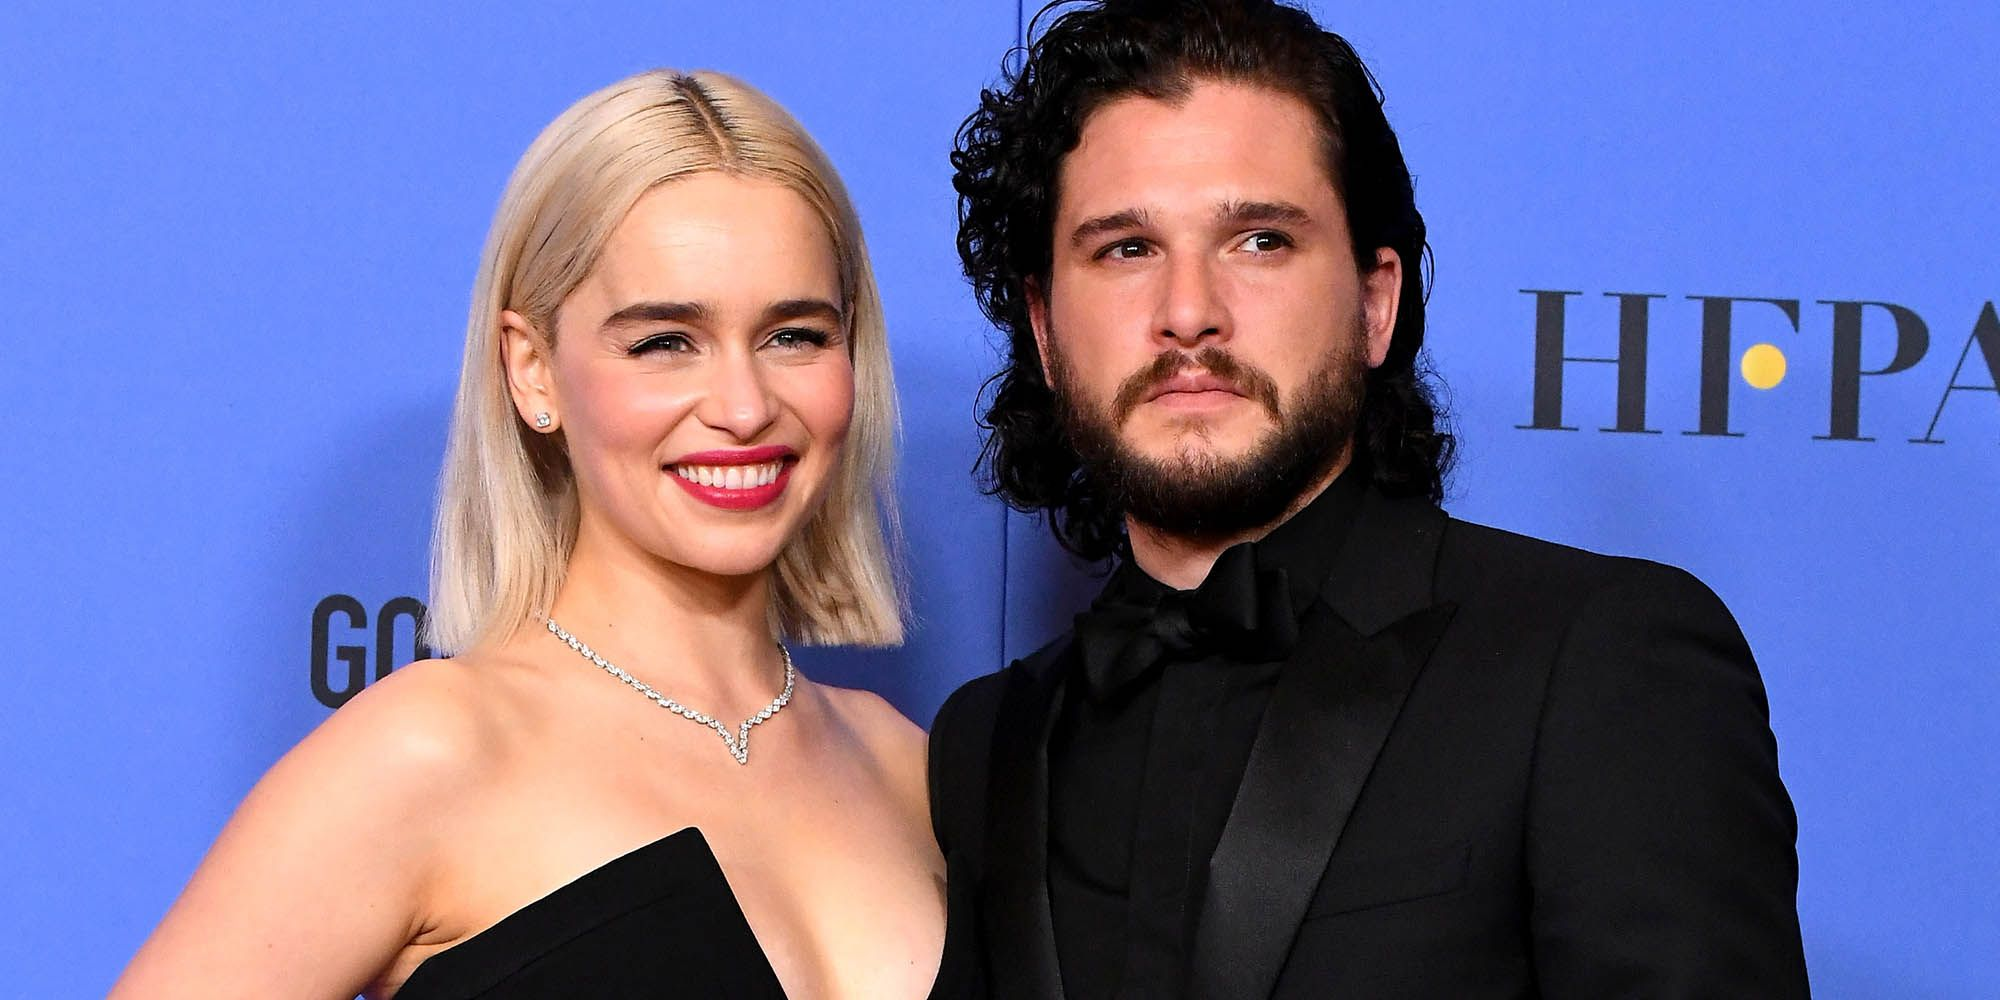 Emilia Clarke, Kit Harington, 75th Annual Golden Globe Awards, Game of Thrones, eerste ontmoeting, vriendschap Emilia Clarke Kit Harington